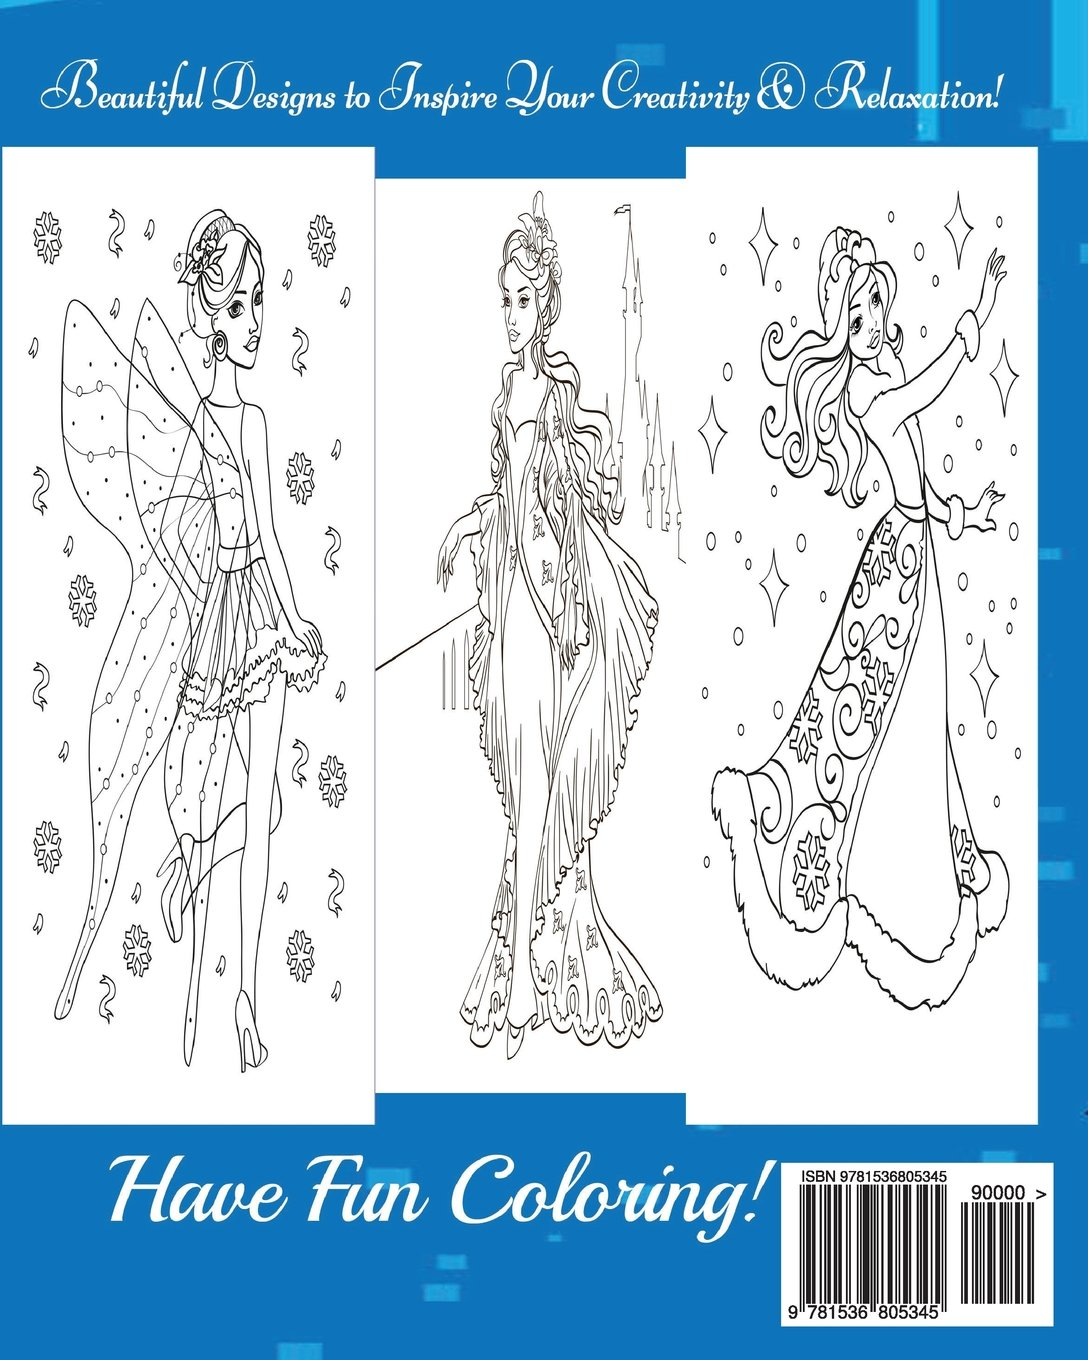 1 Disney Princess A Blue Dream Adult Coloring Book To Inspire Creativity And Relaxation Volume Dave Archer 9781536805345